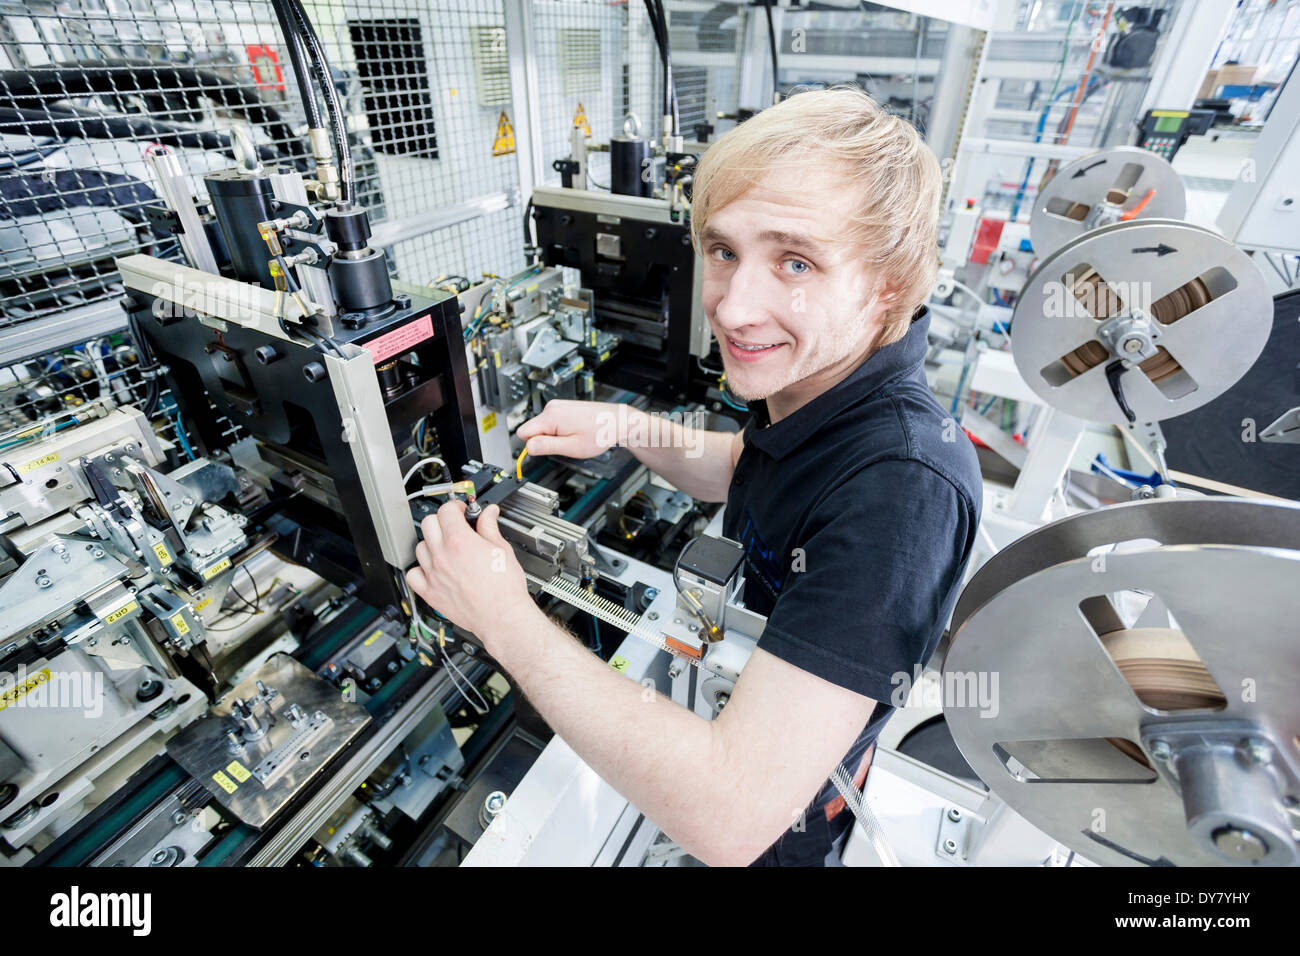 Fabian Kerscher, best trainee nationwide in 2013 in the field of mechatronics, adjusting the sensor position at a punch, - Stock Image